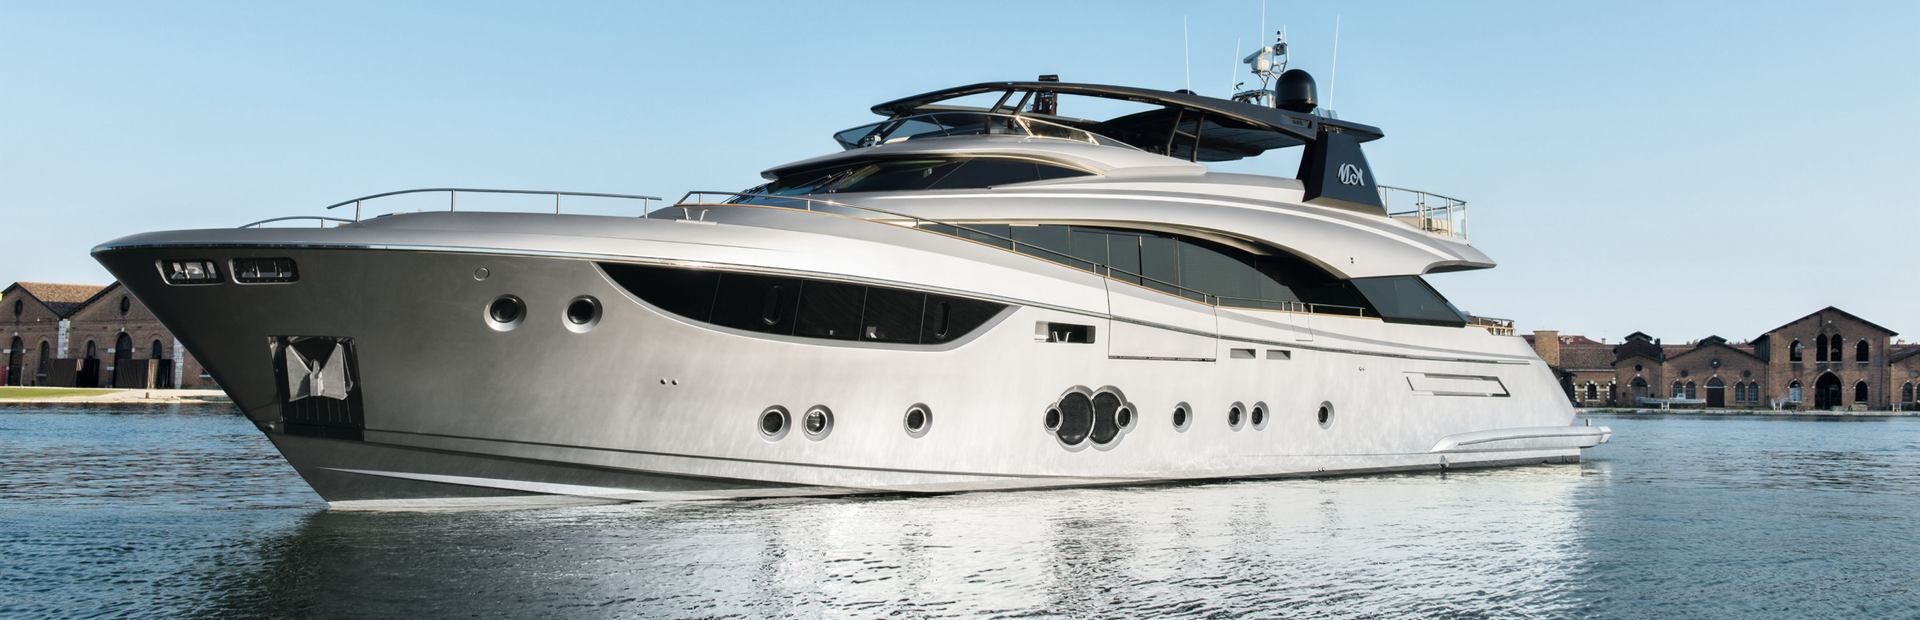 MCY 105 Yacht Charter